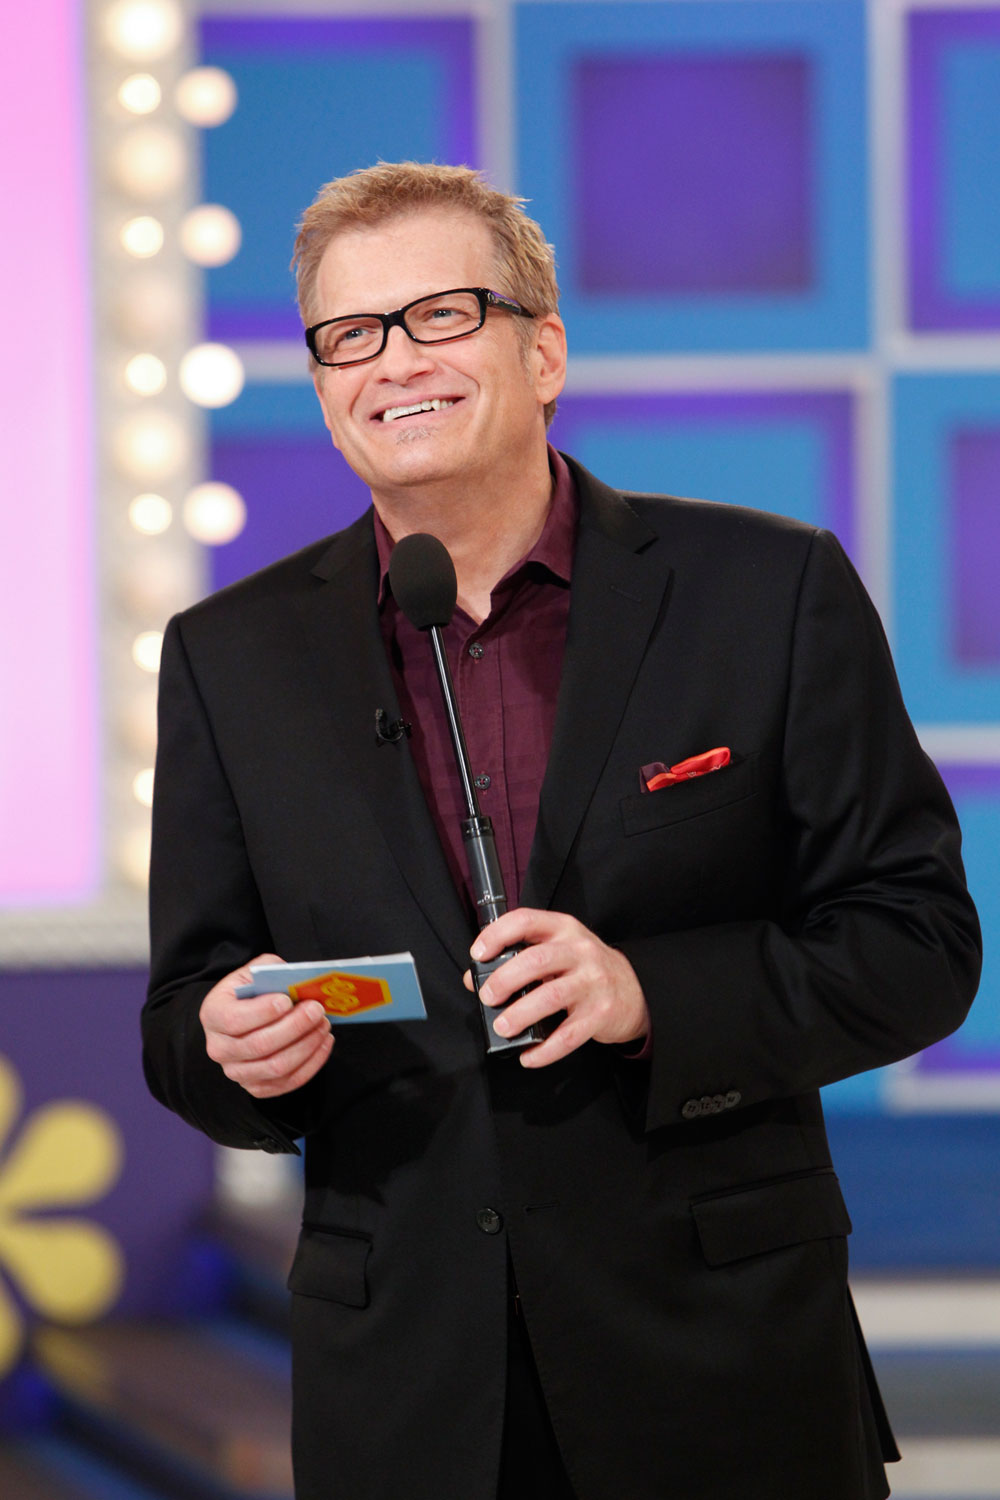 priceisright.com